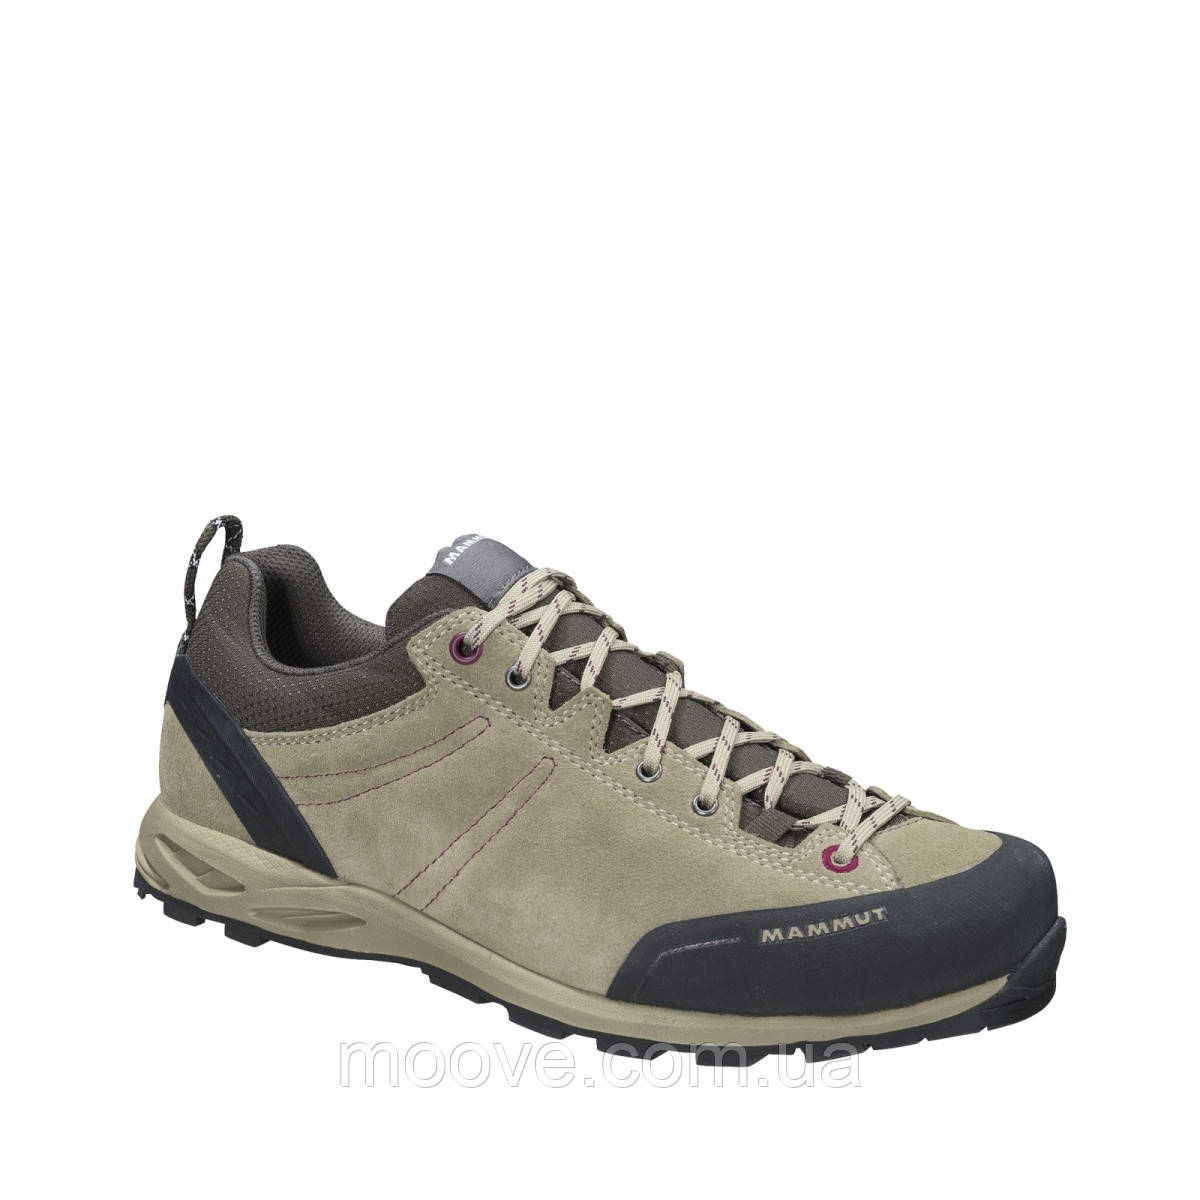 Кроссовки жен. Mammut Wall Low Woman dark taupe-amarante UK 4,5 (EU 37 1/3)